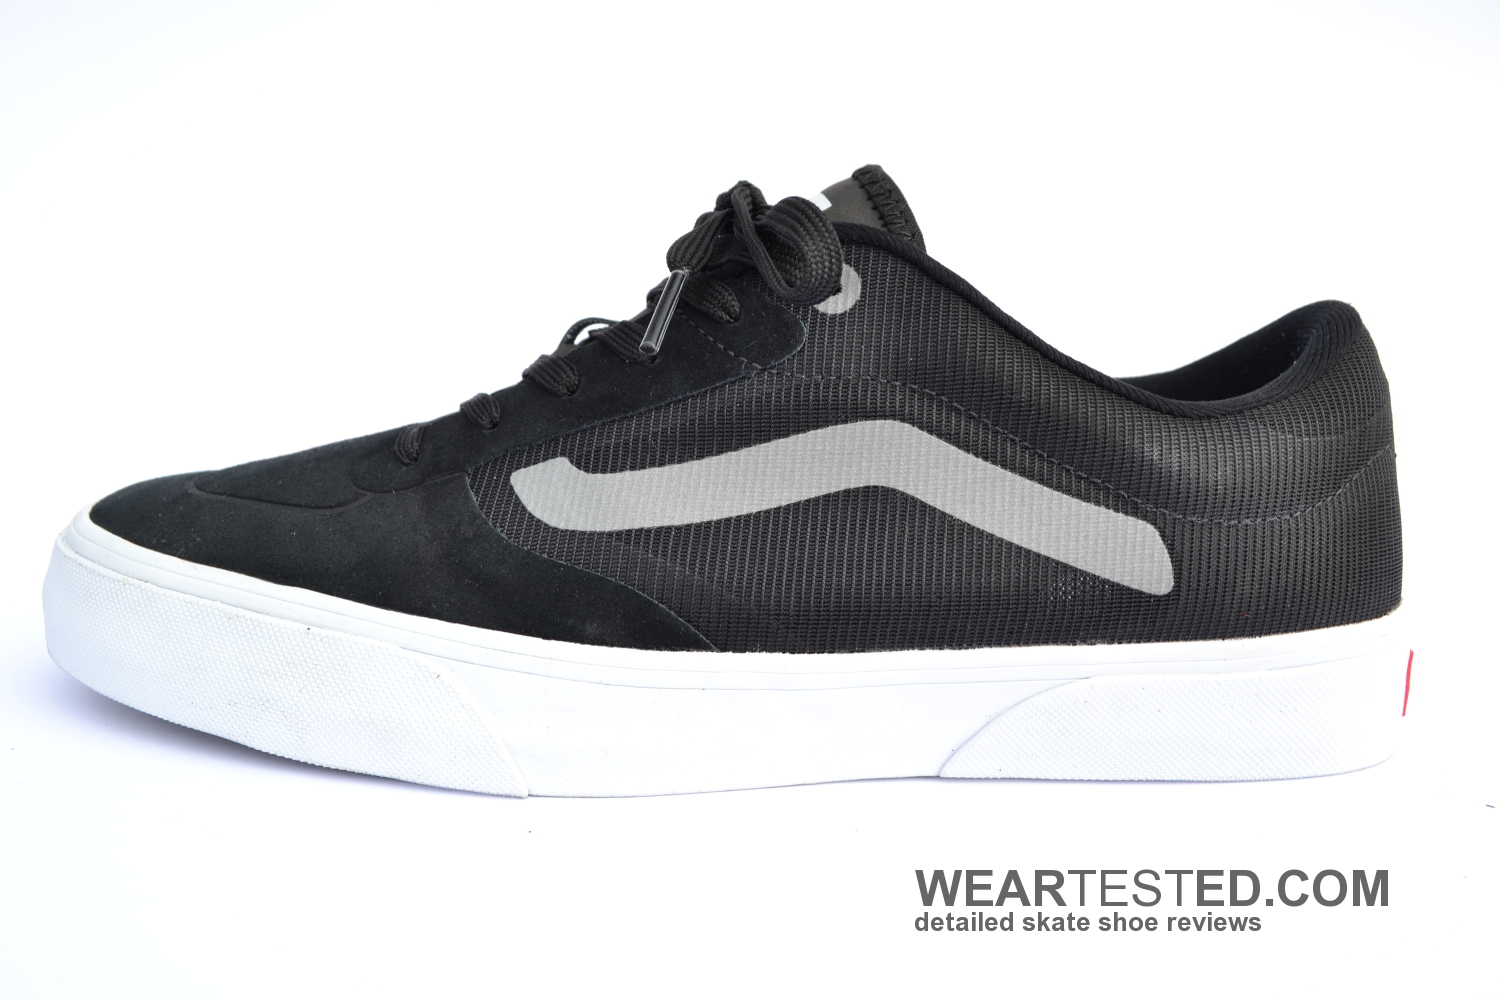 18d6e4d1be Vans Rowley Pro Lite - Weartested - detailed skate shoe reviews